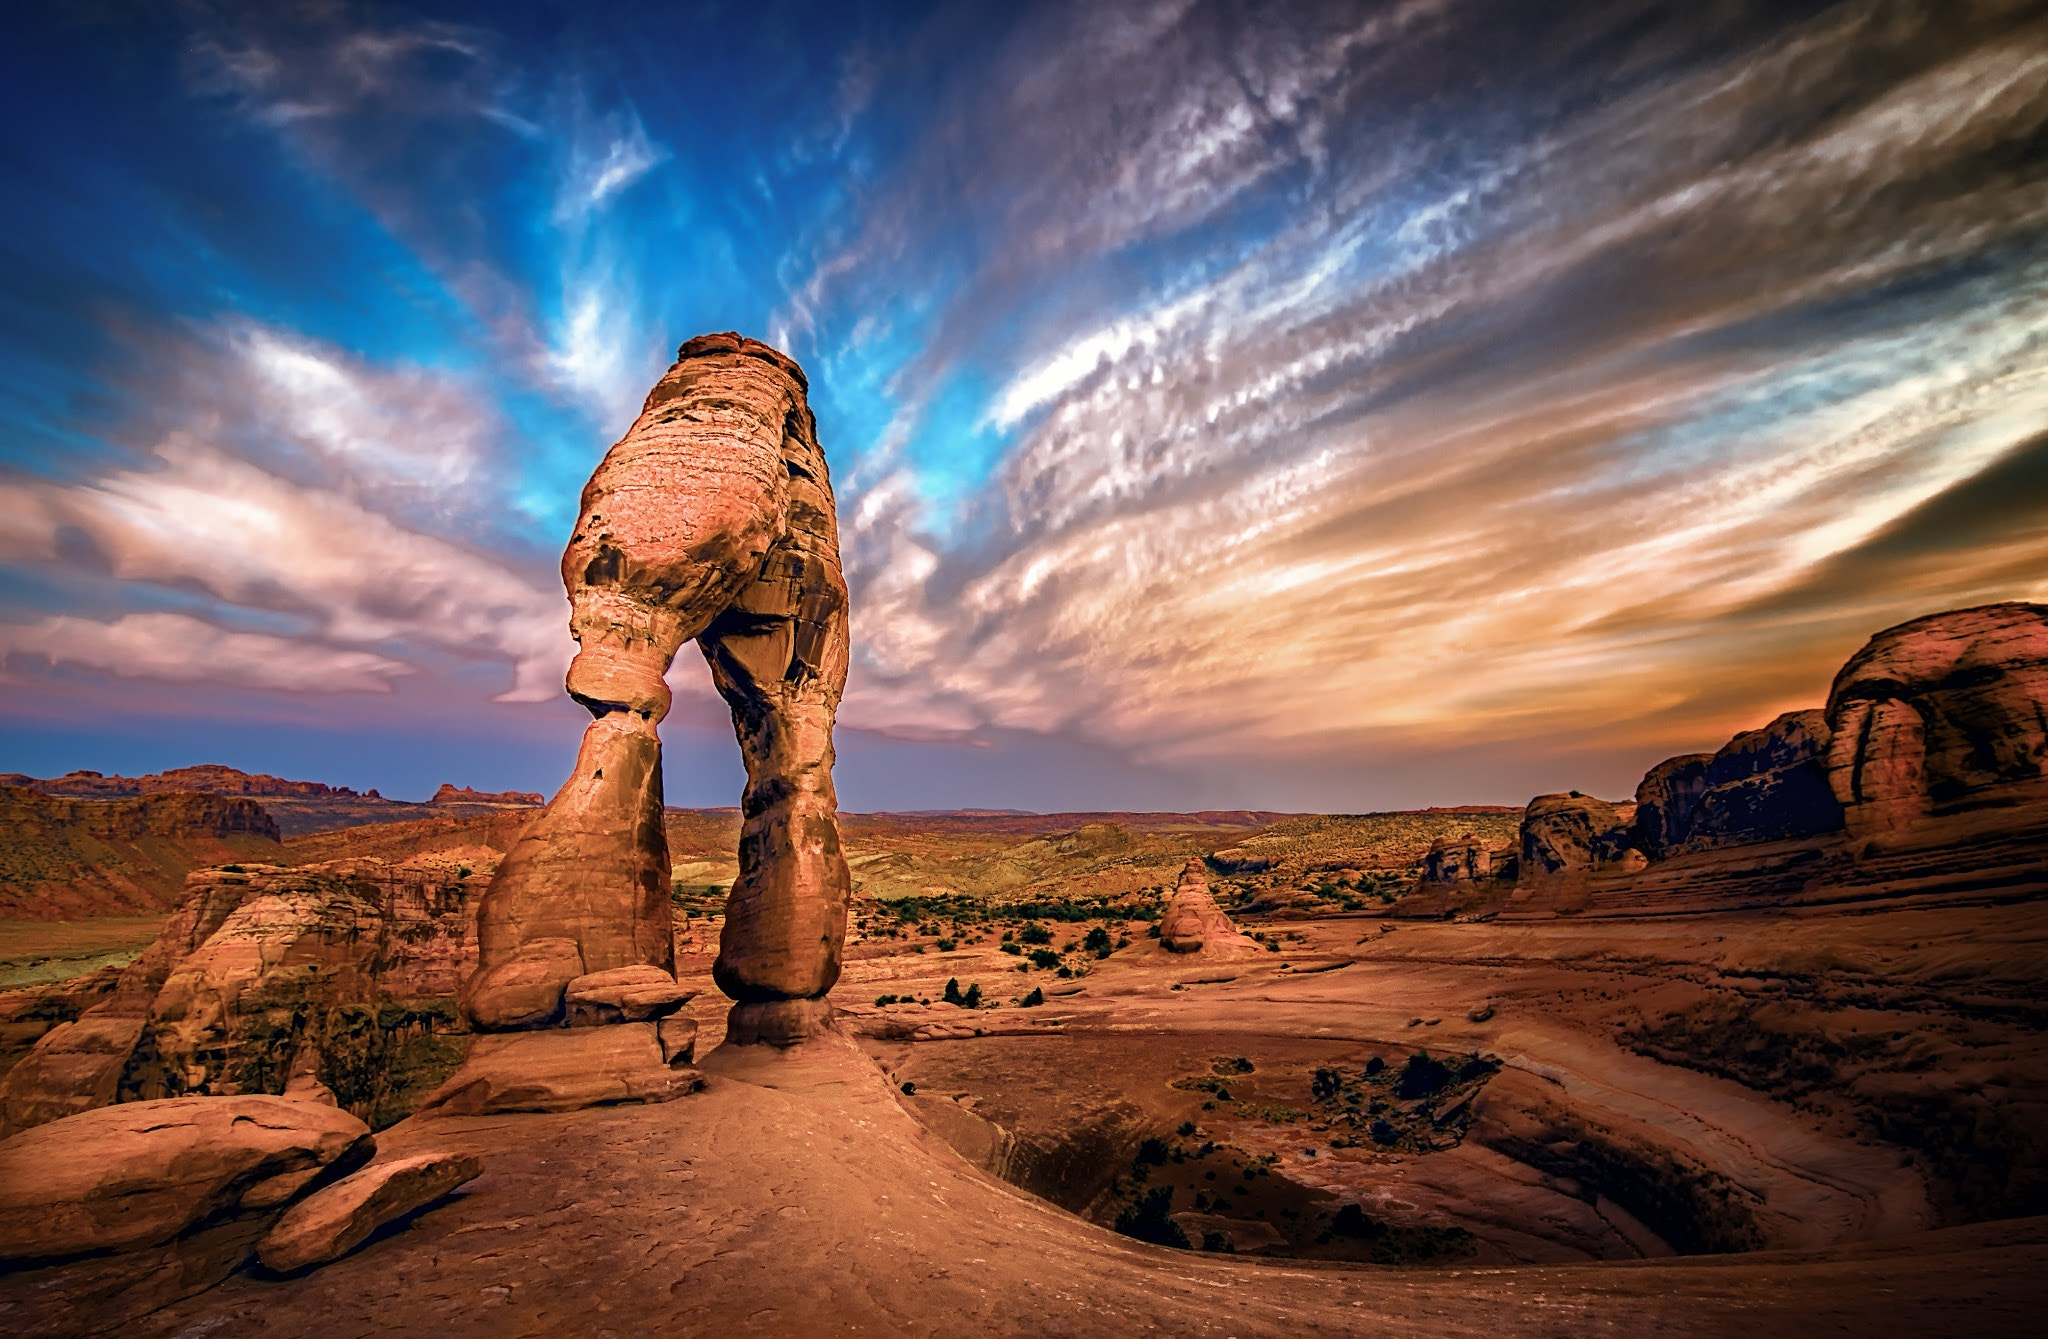 Photograph On the Precipice of a Sandstone Vortex by  Photo on 500px